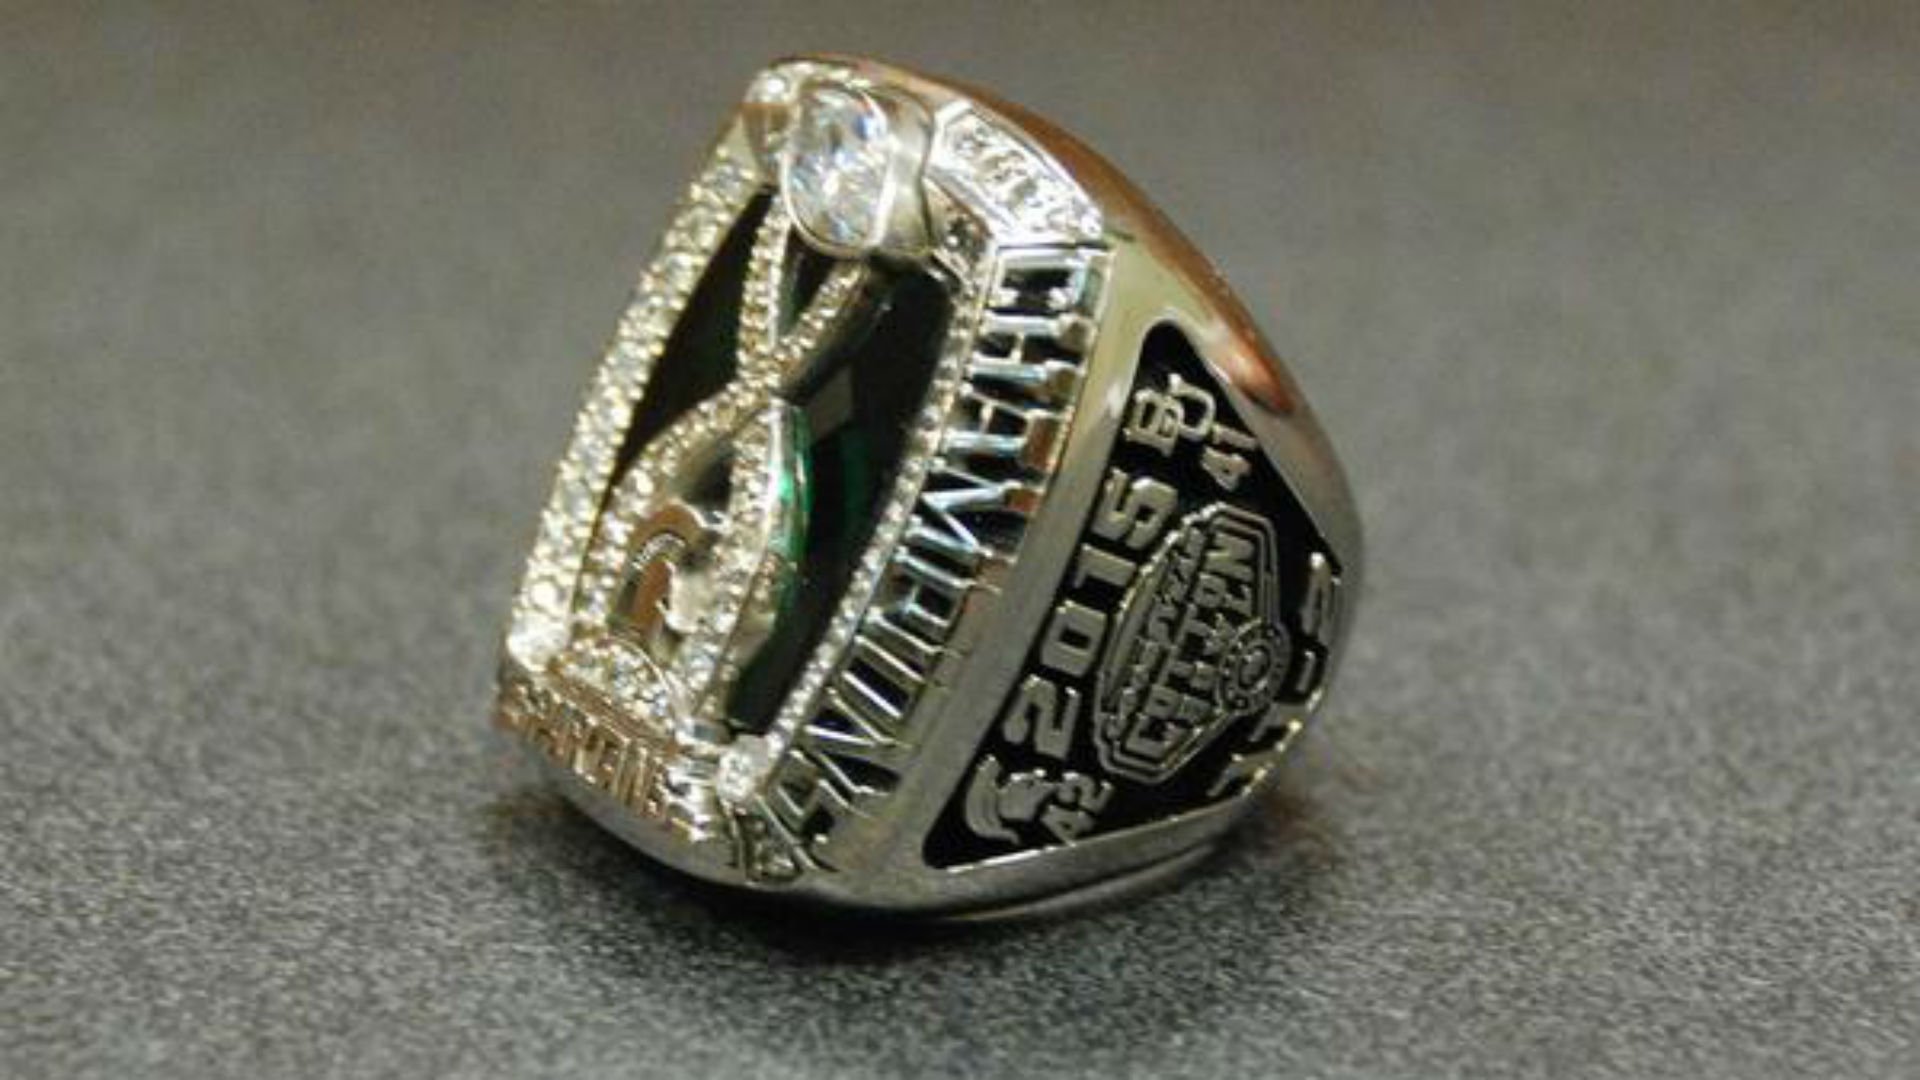 hoops mankato sports men s university state basketball hoopsclub club minnesota ring archive rings ceremony msu